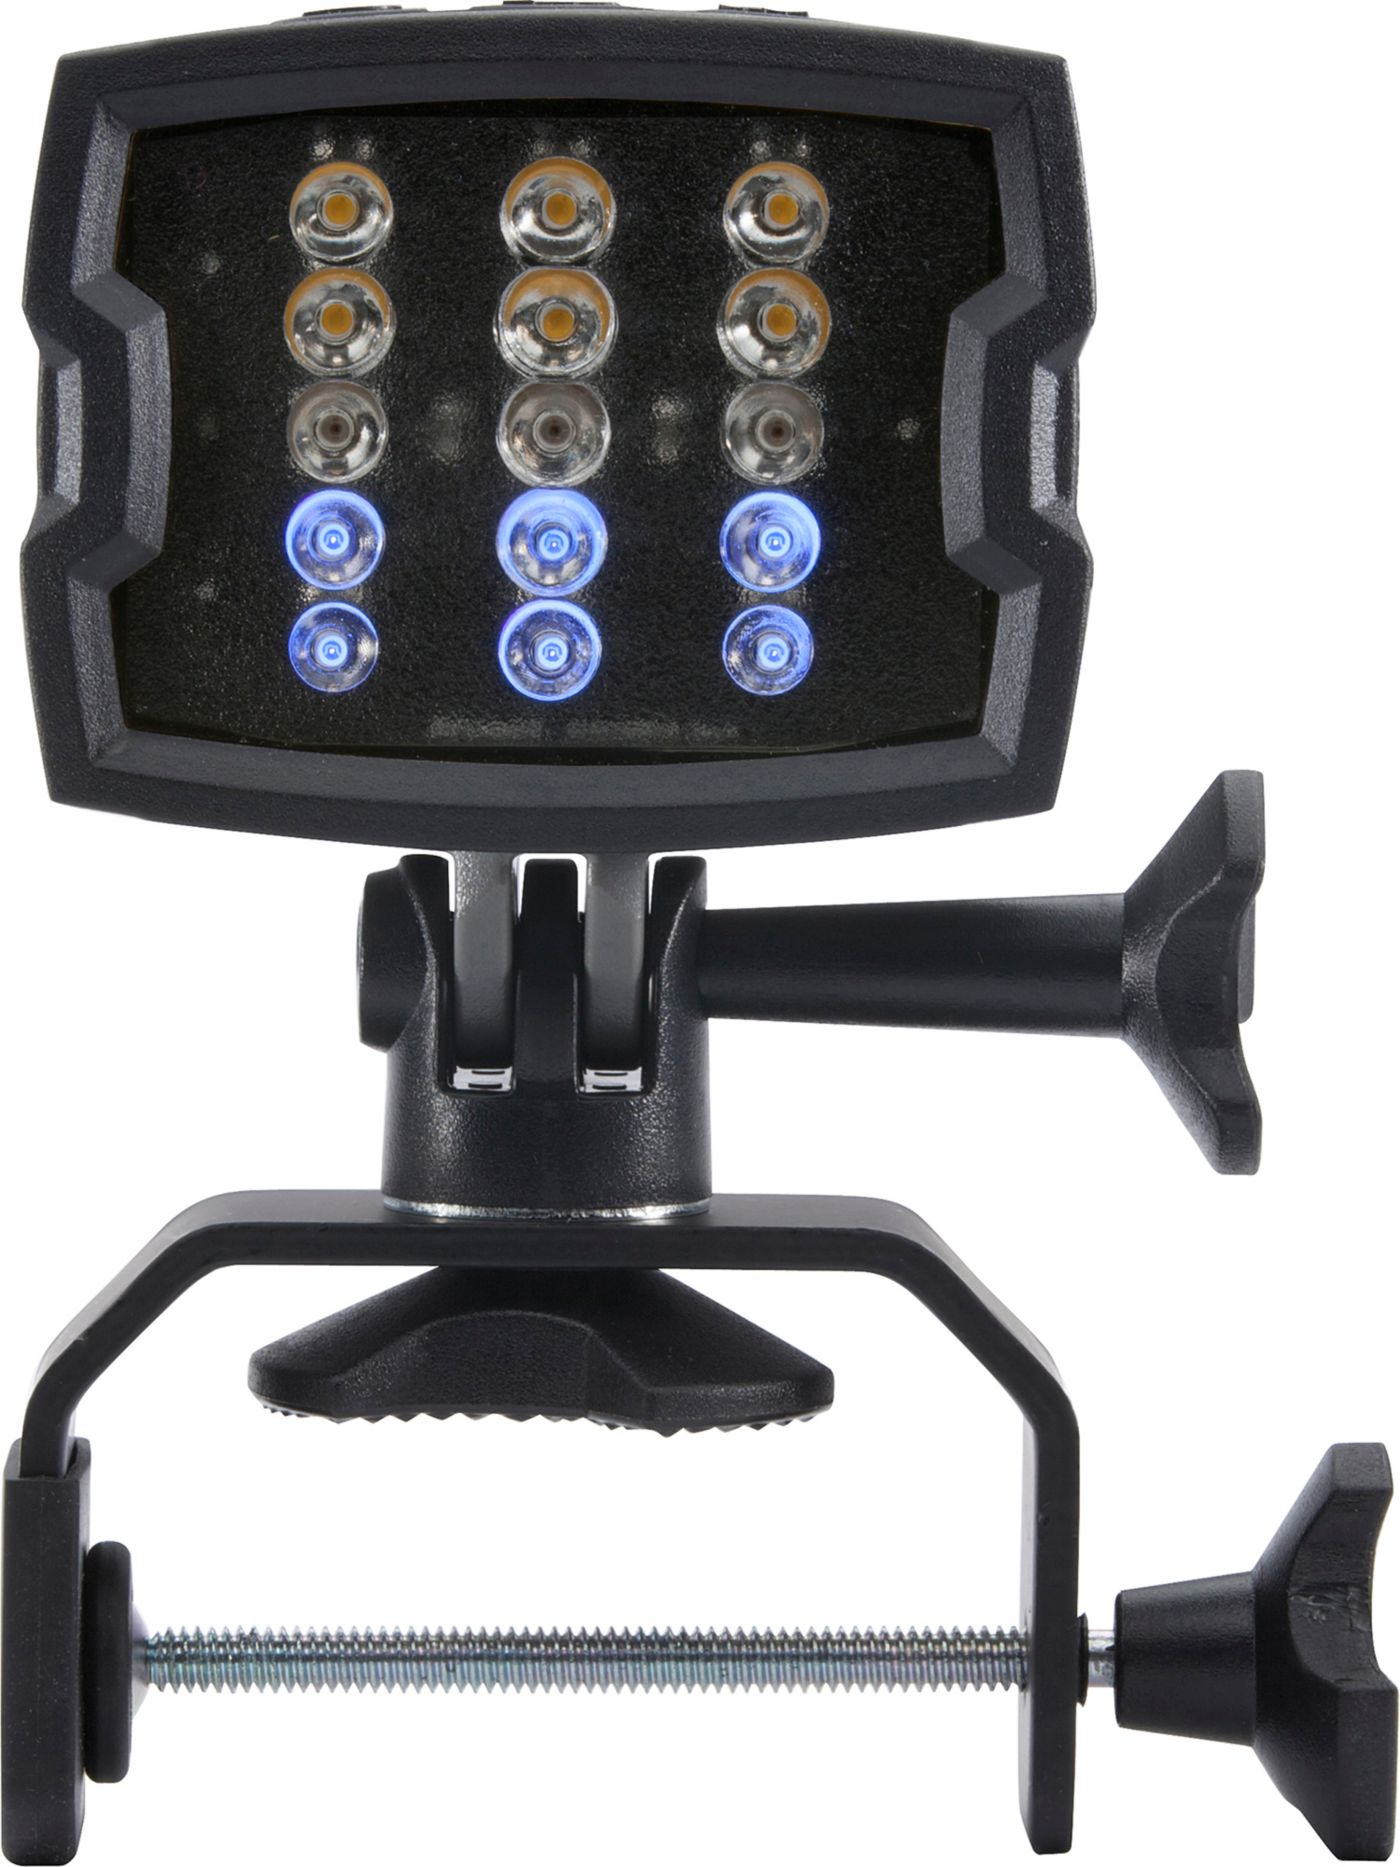 Attwood XFS Multi-Function LED Sport Lights